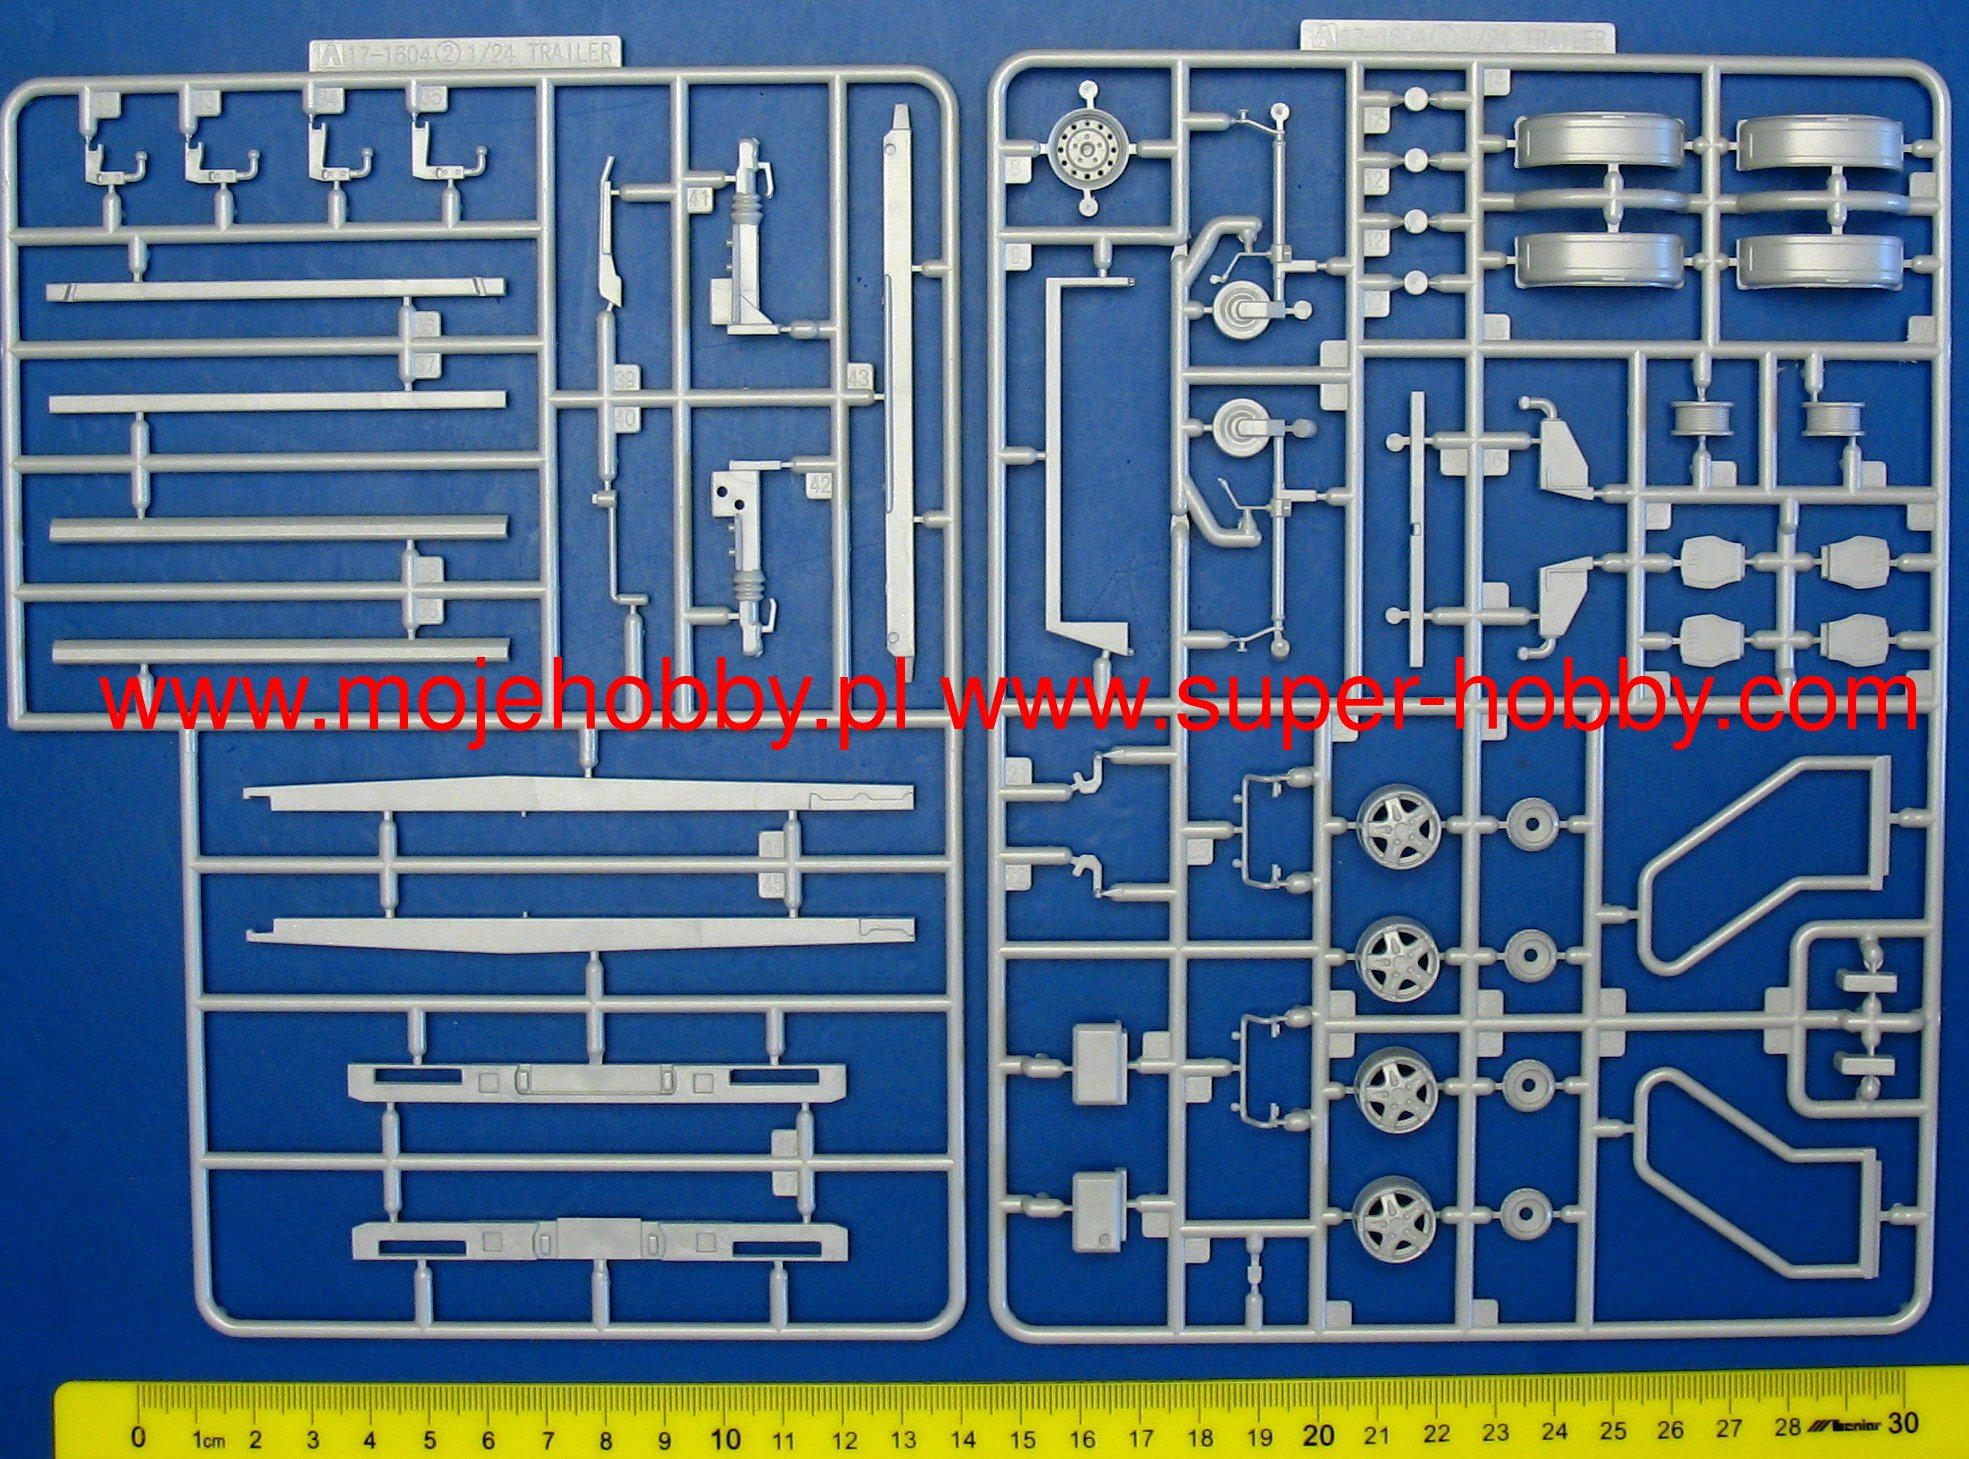 Brian James Trailer Wiring Diagram - Auto Electrical Wiring Diagram •